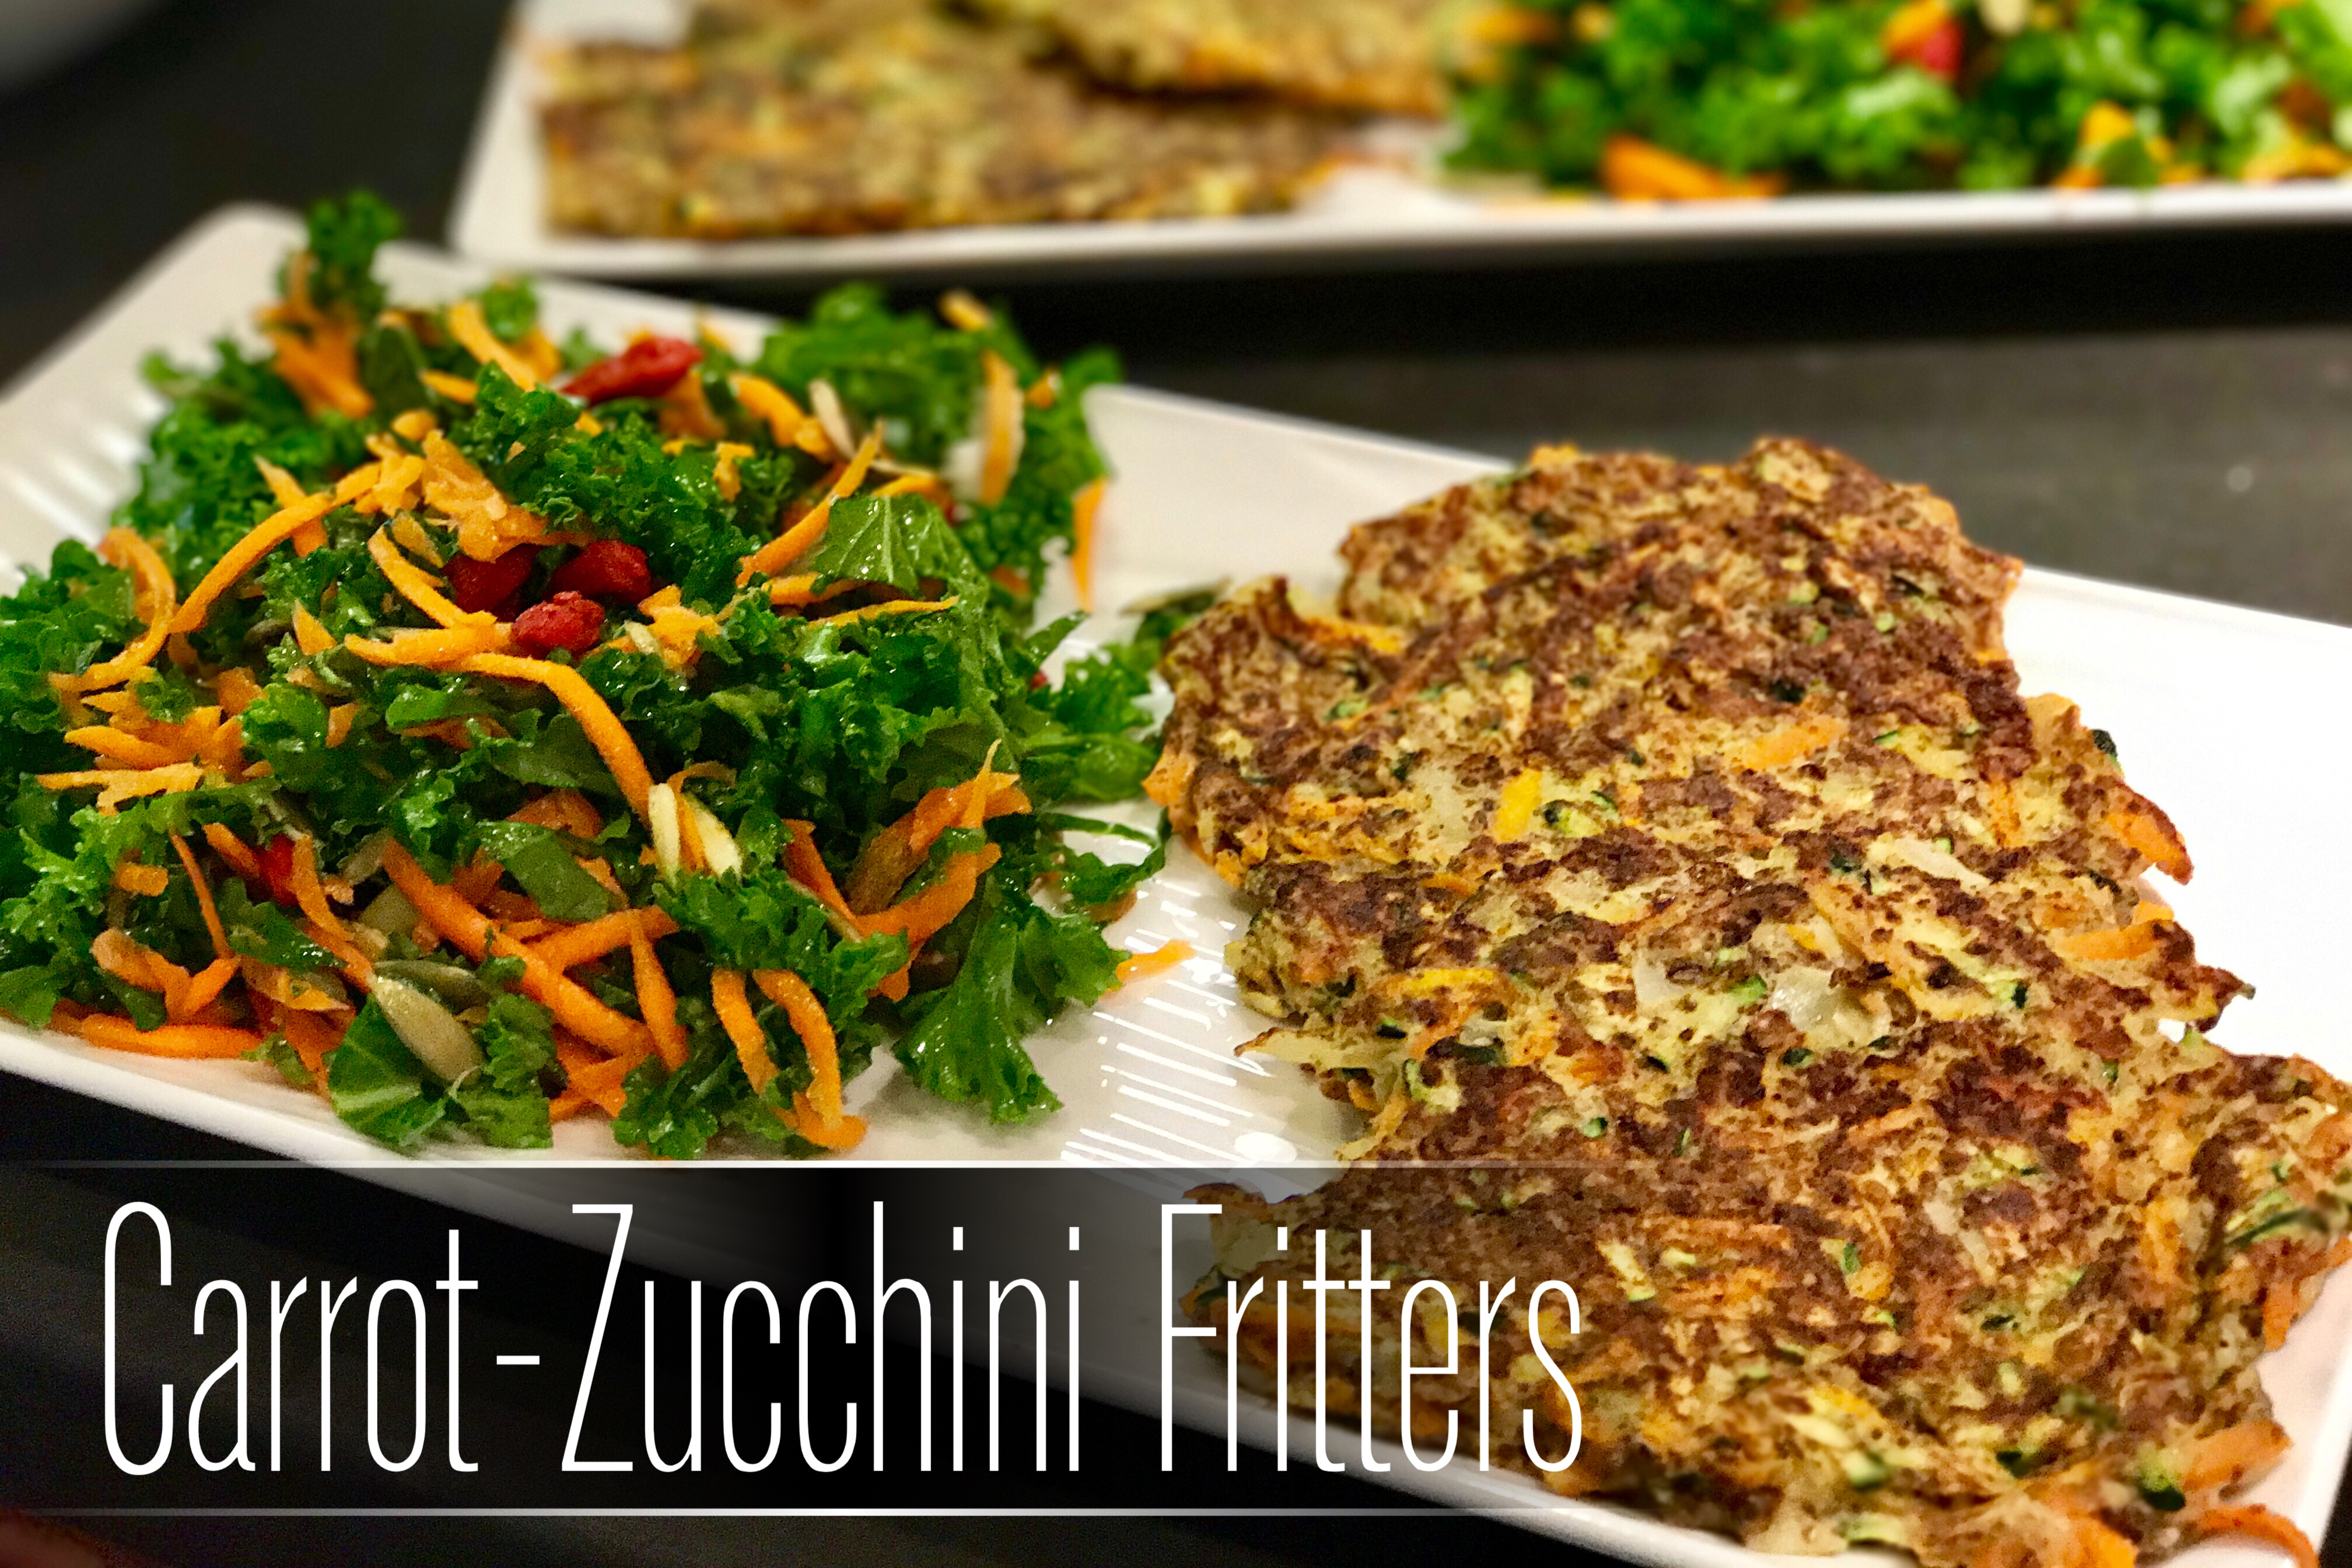 Carrot-Zucchini Gluten-Free Vegetable Fritters